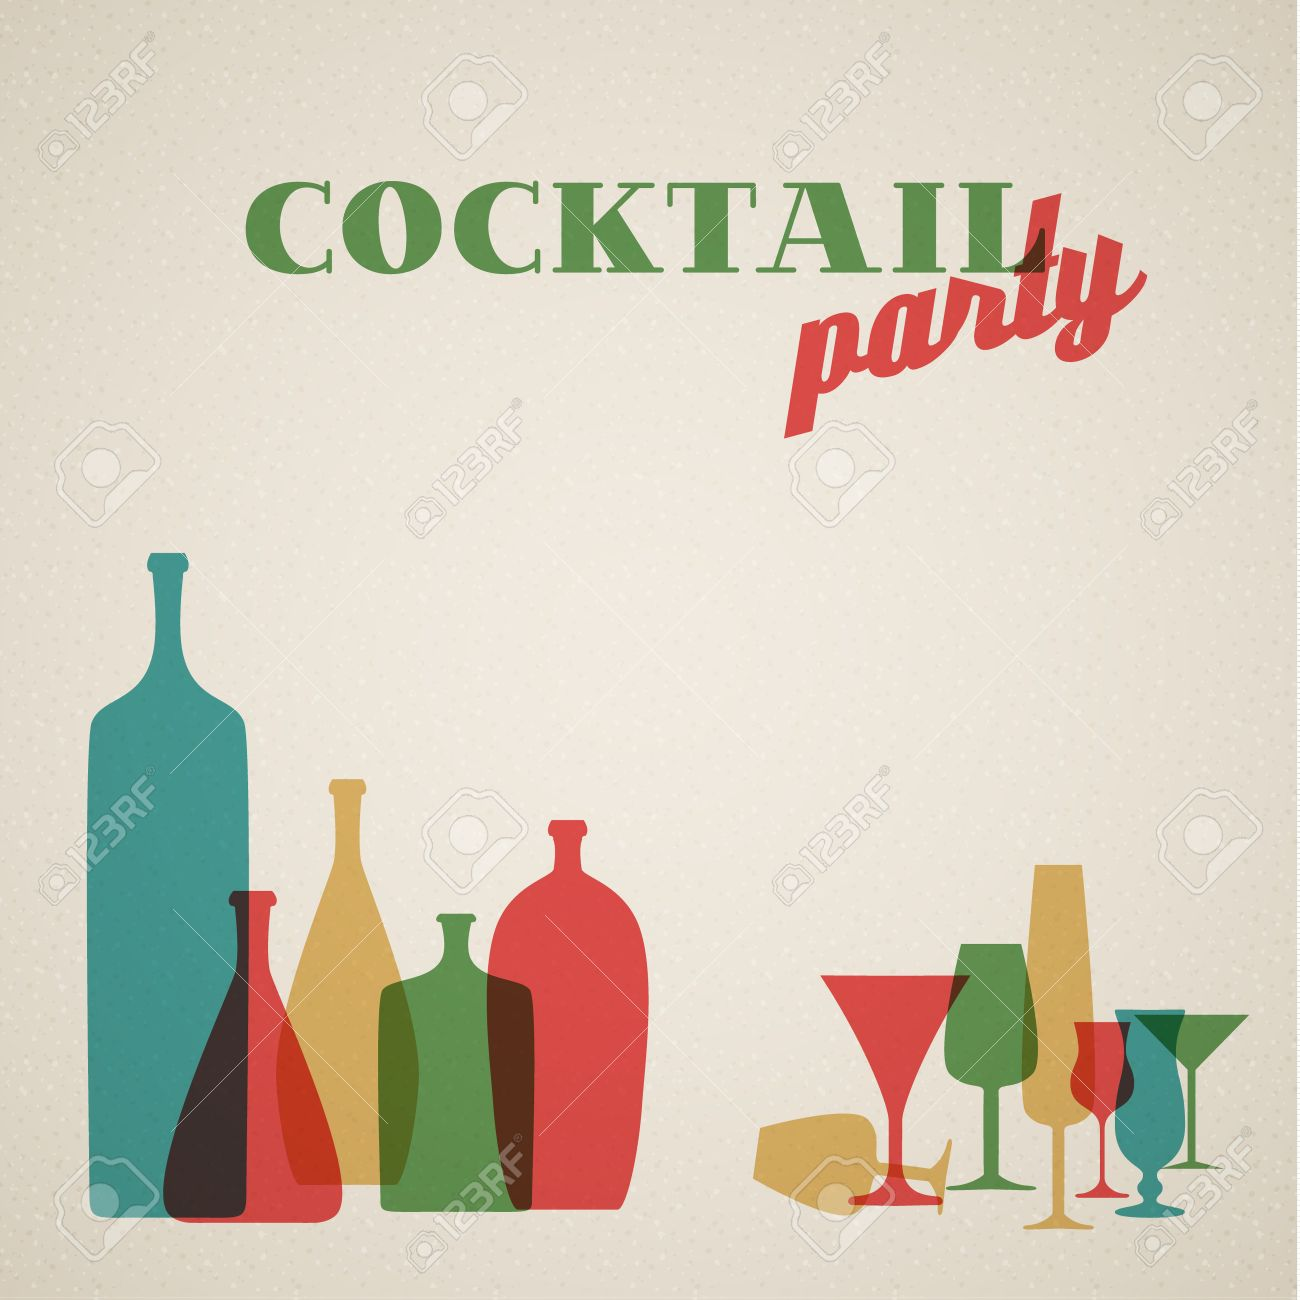 Retro Cocktail Party Invitation Card With Glasses And Bottles – Cocktail Party Invitation Cards